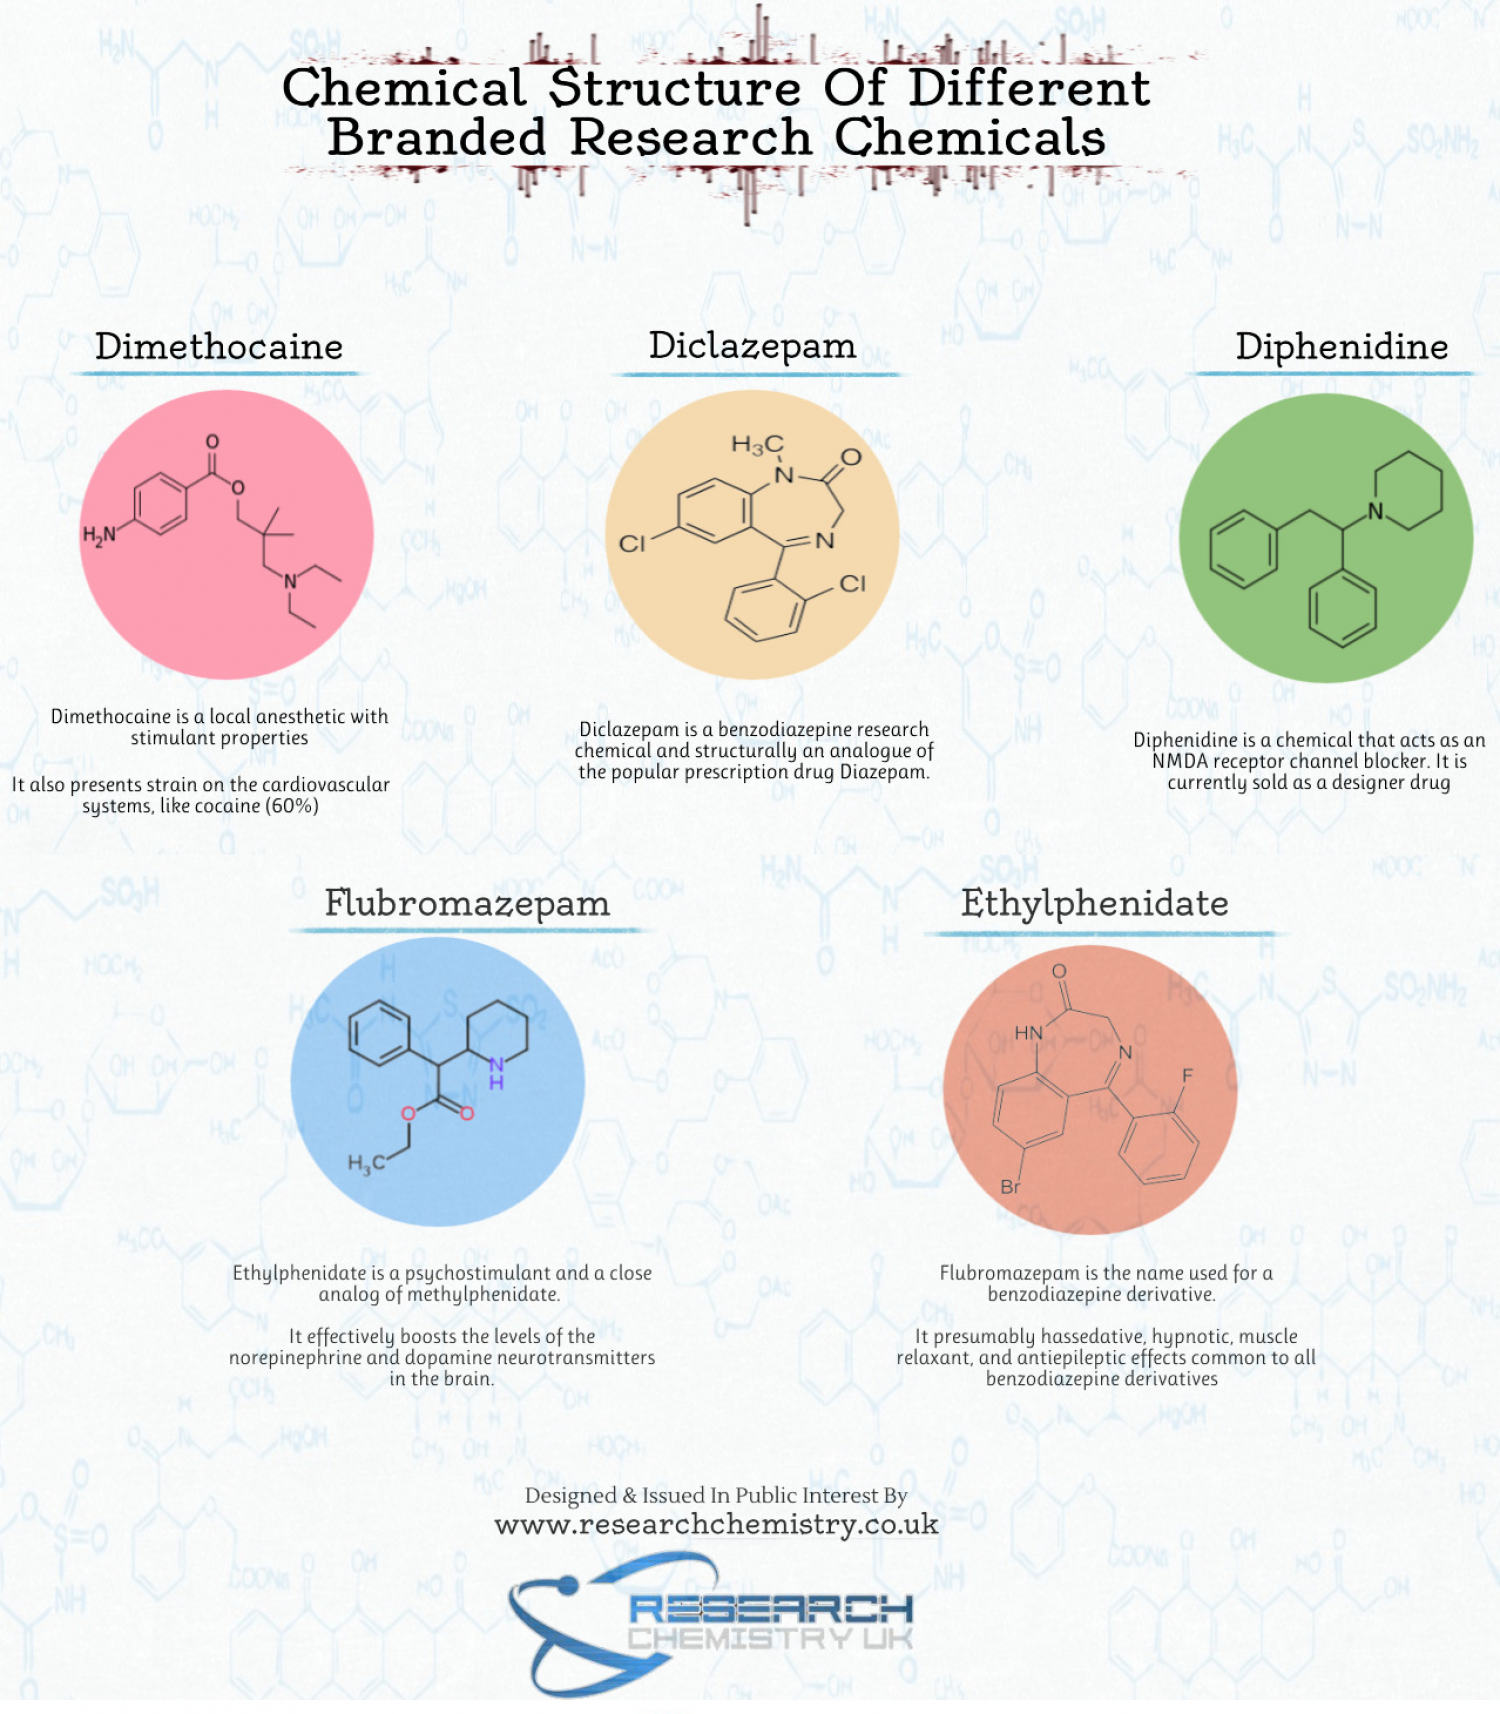 Chemical Structure Of Different Branded Research Chemicals Infographic